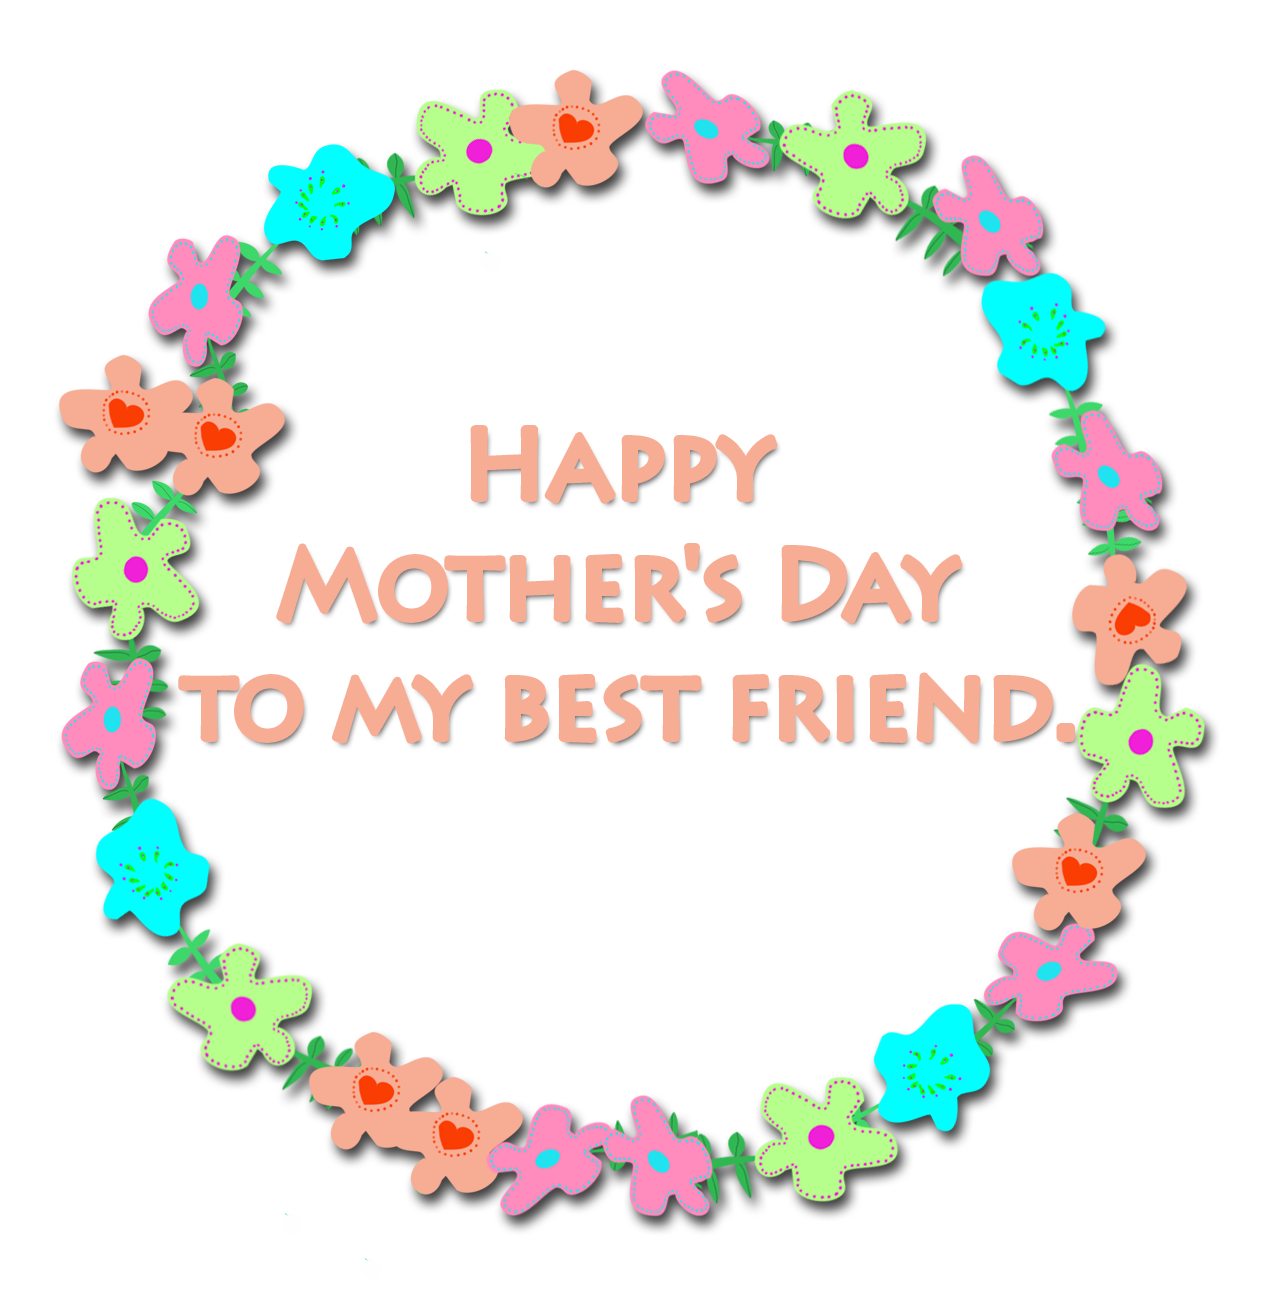 best friend Mother's day greeting